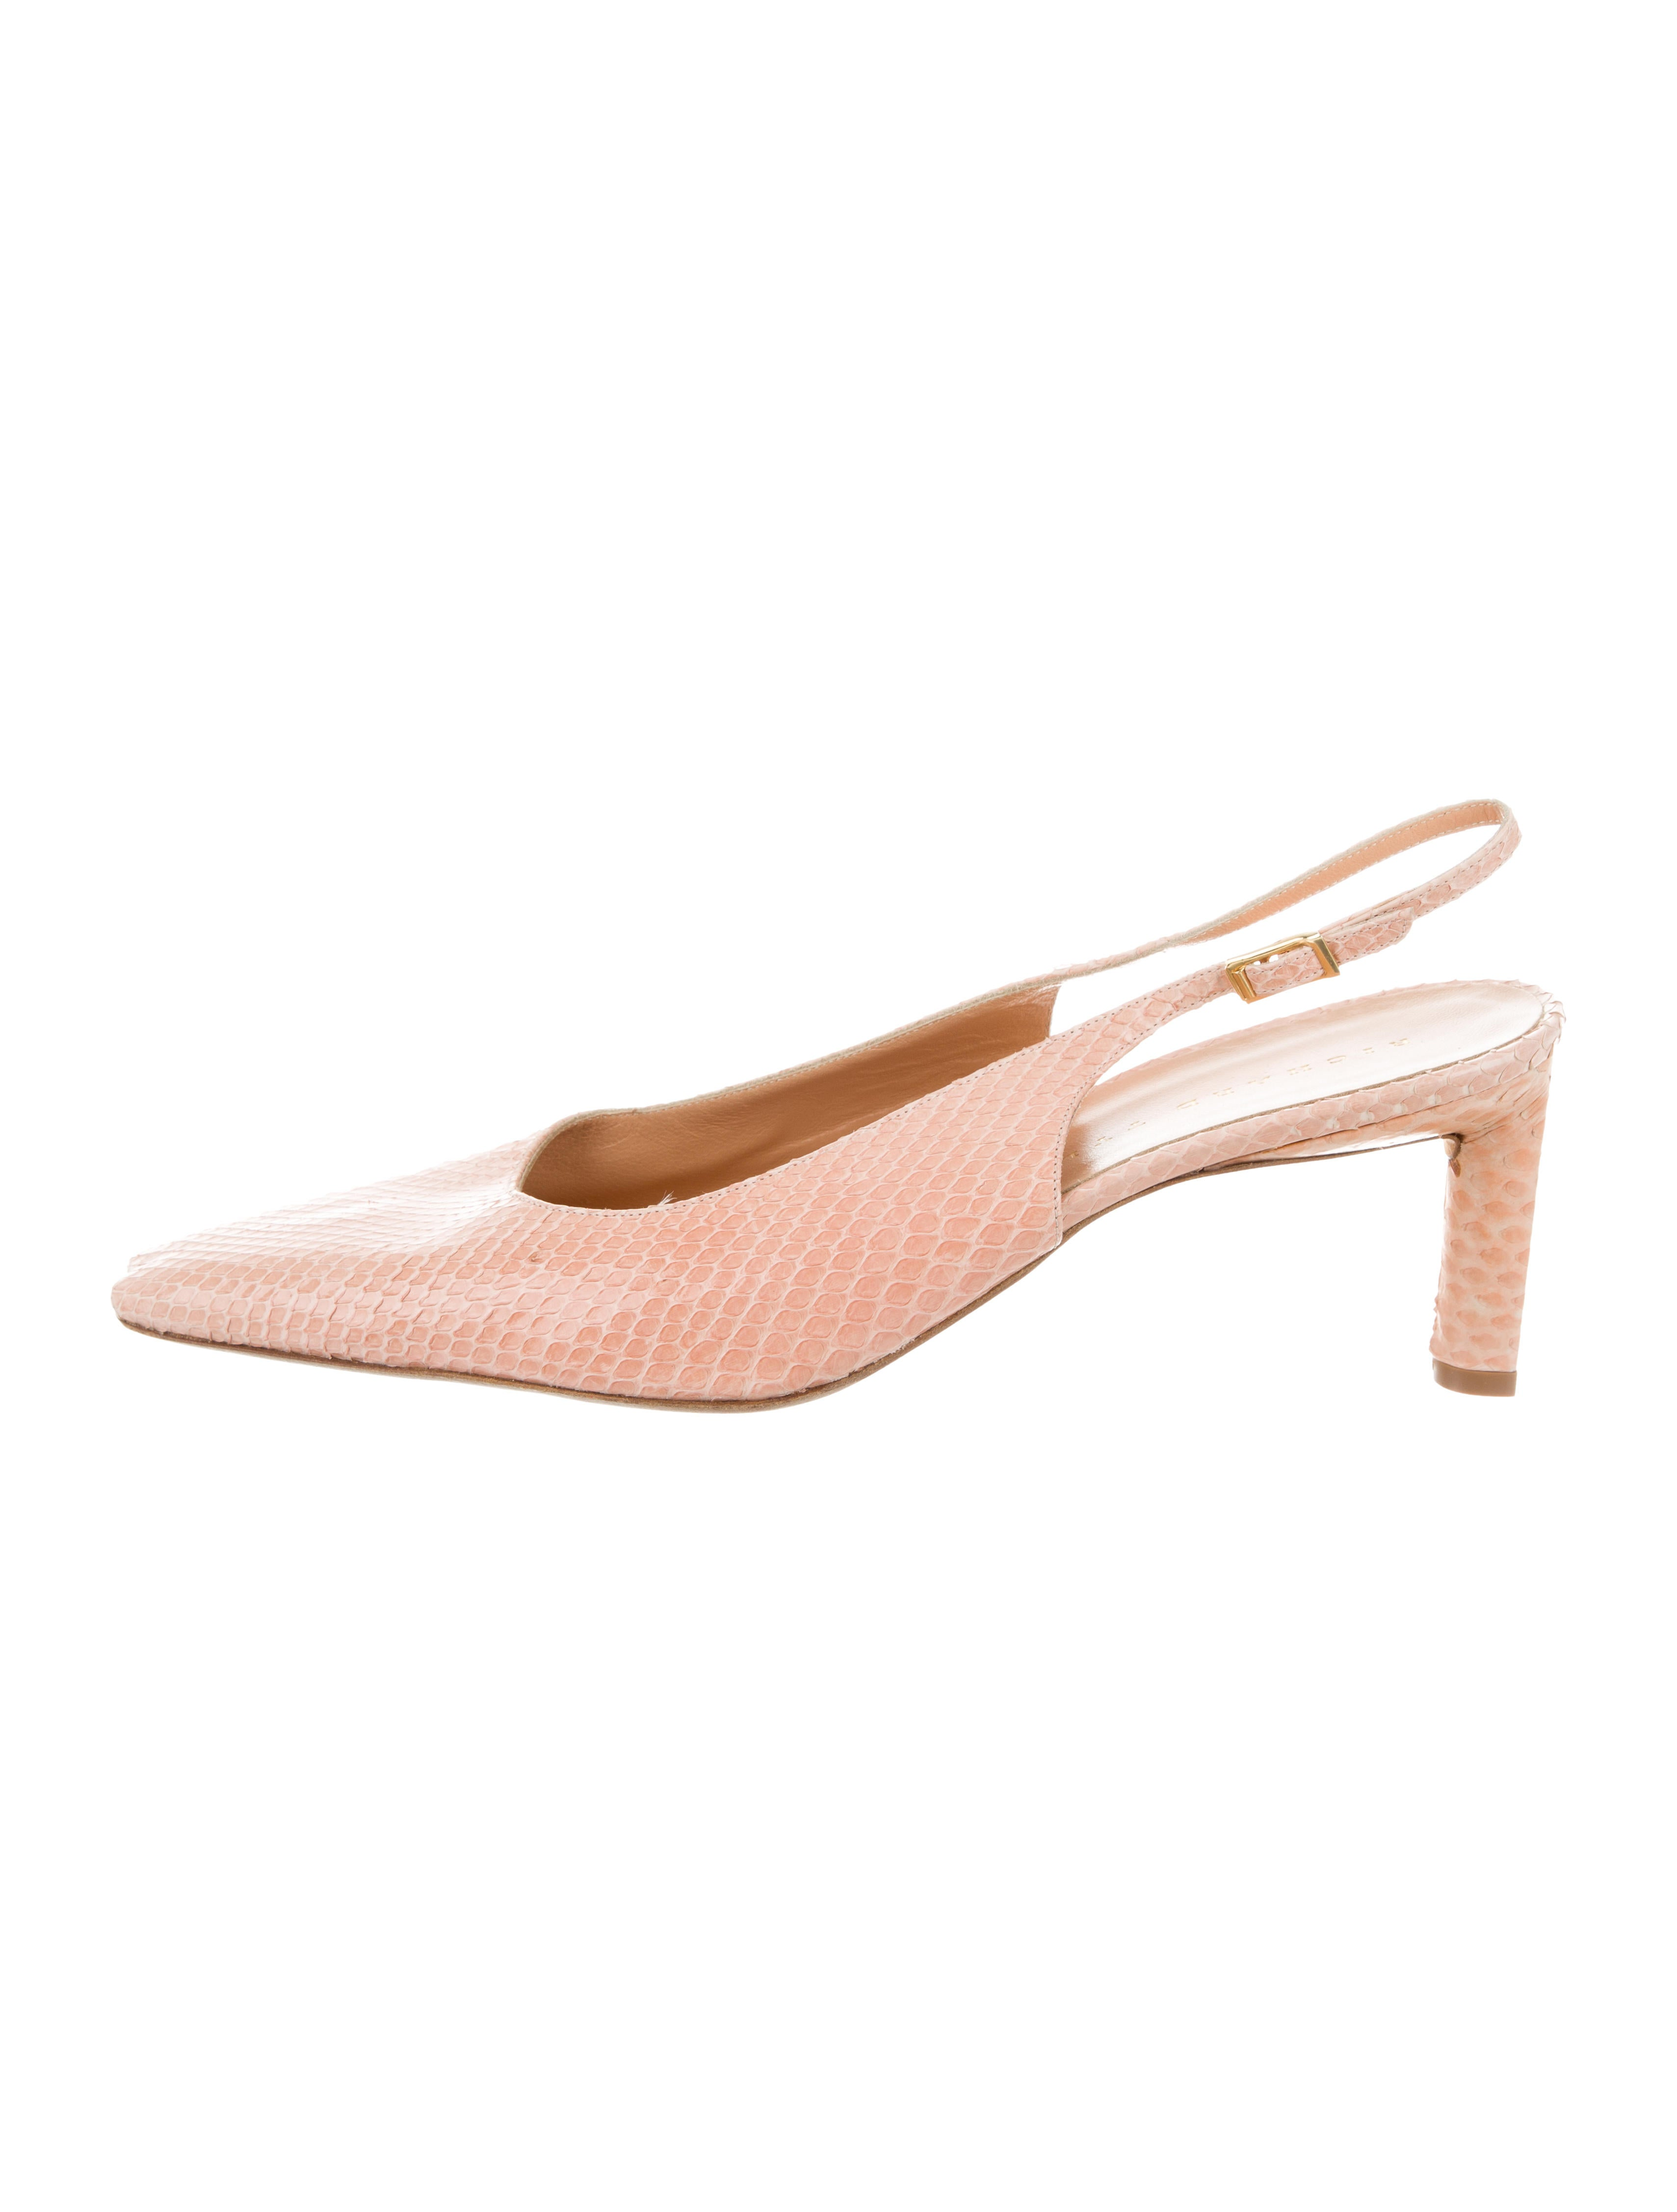 find great for sale Richard Tyler Snakeskin Slingback Pumps outlet extremely Inexpensive for sale cheap best place discount release dates HNq6bU